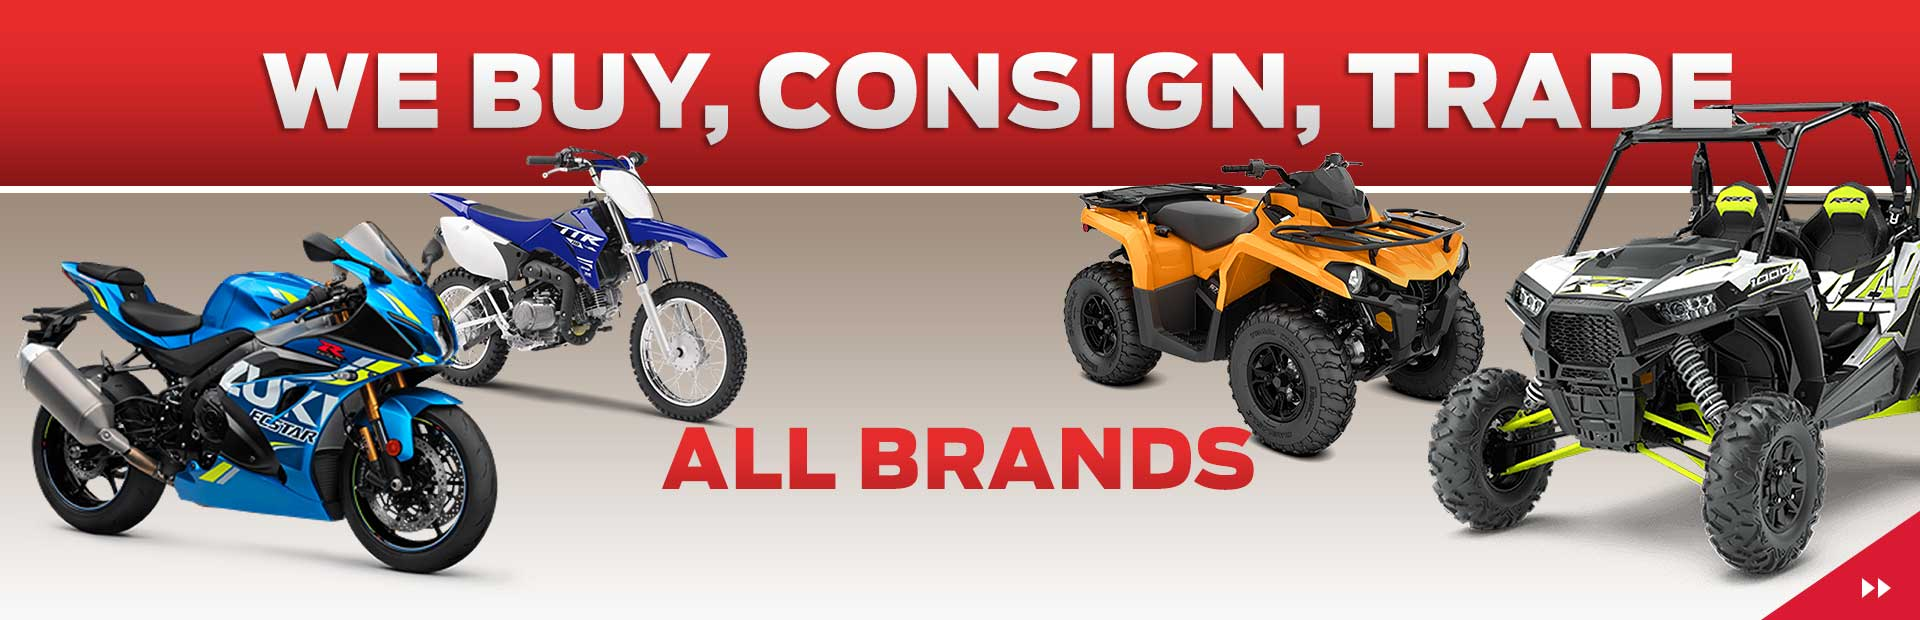 We Buy, Consign, Trade - ALL BRANDS